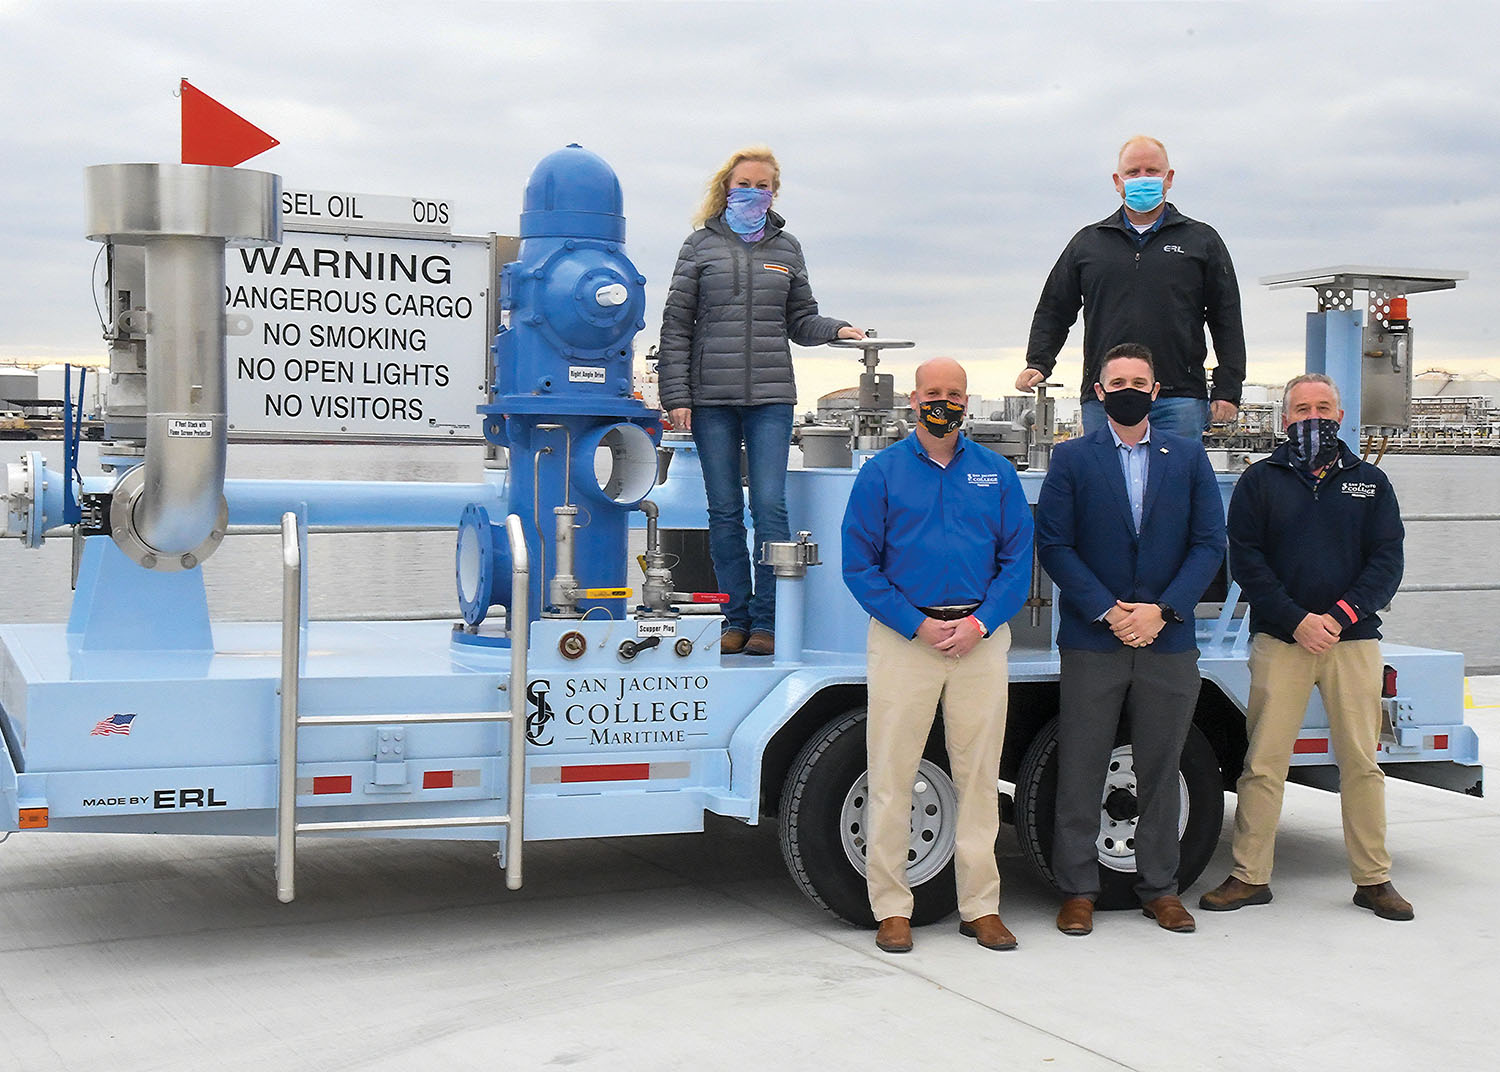 Representatives of San Jacinto College Maritime Technology & Training Center and ERL/Law Valve of Texas are pictured with the tank barge training trailer the company built for San Jac. Pictured are (top row, left to right) Amy Arrowood from San Jacinto College and Sean Ragains from ERL/Law Valve of Texas, and (front row, left to right) San Jac's John Stauffer, Craig Theiler from ERL/LVT and San Jac's Edward Horton.